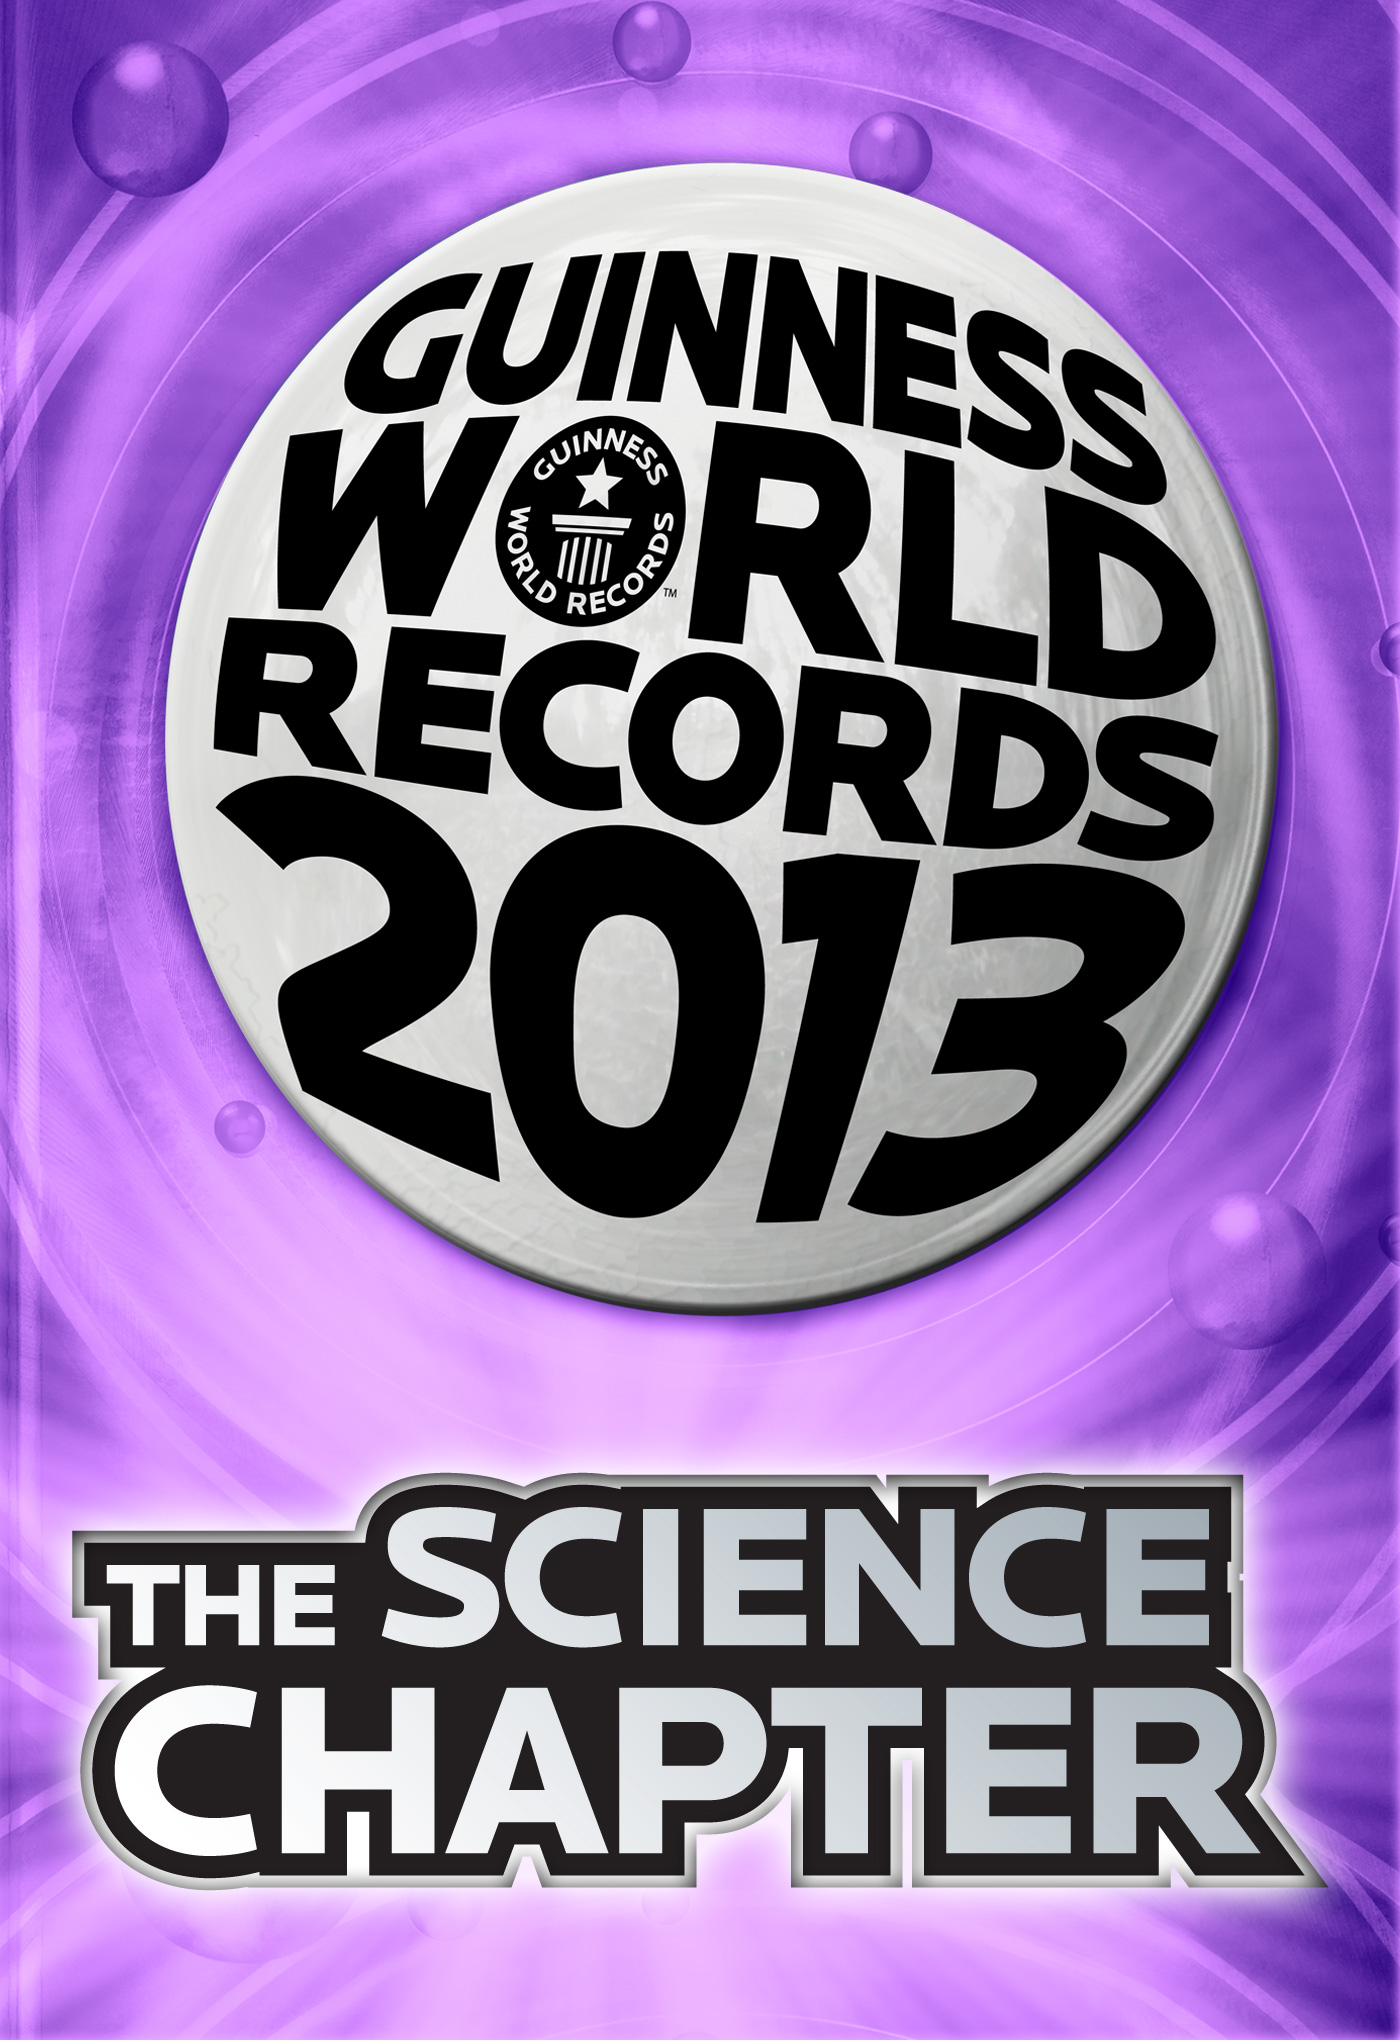 Guinness World Records 2013 - The Science Chapter By: Guinness World Records